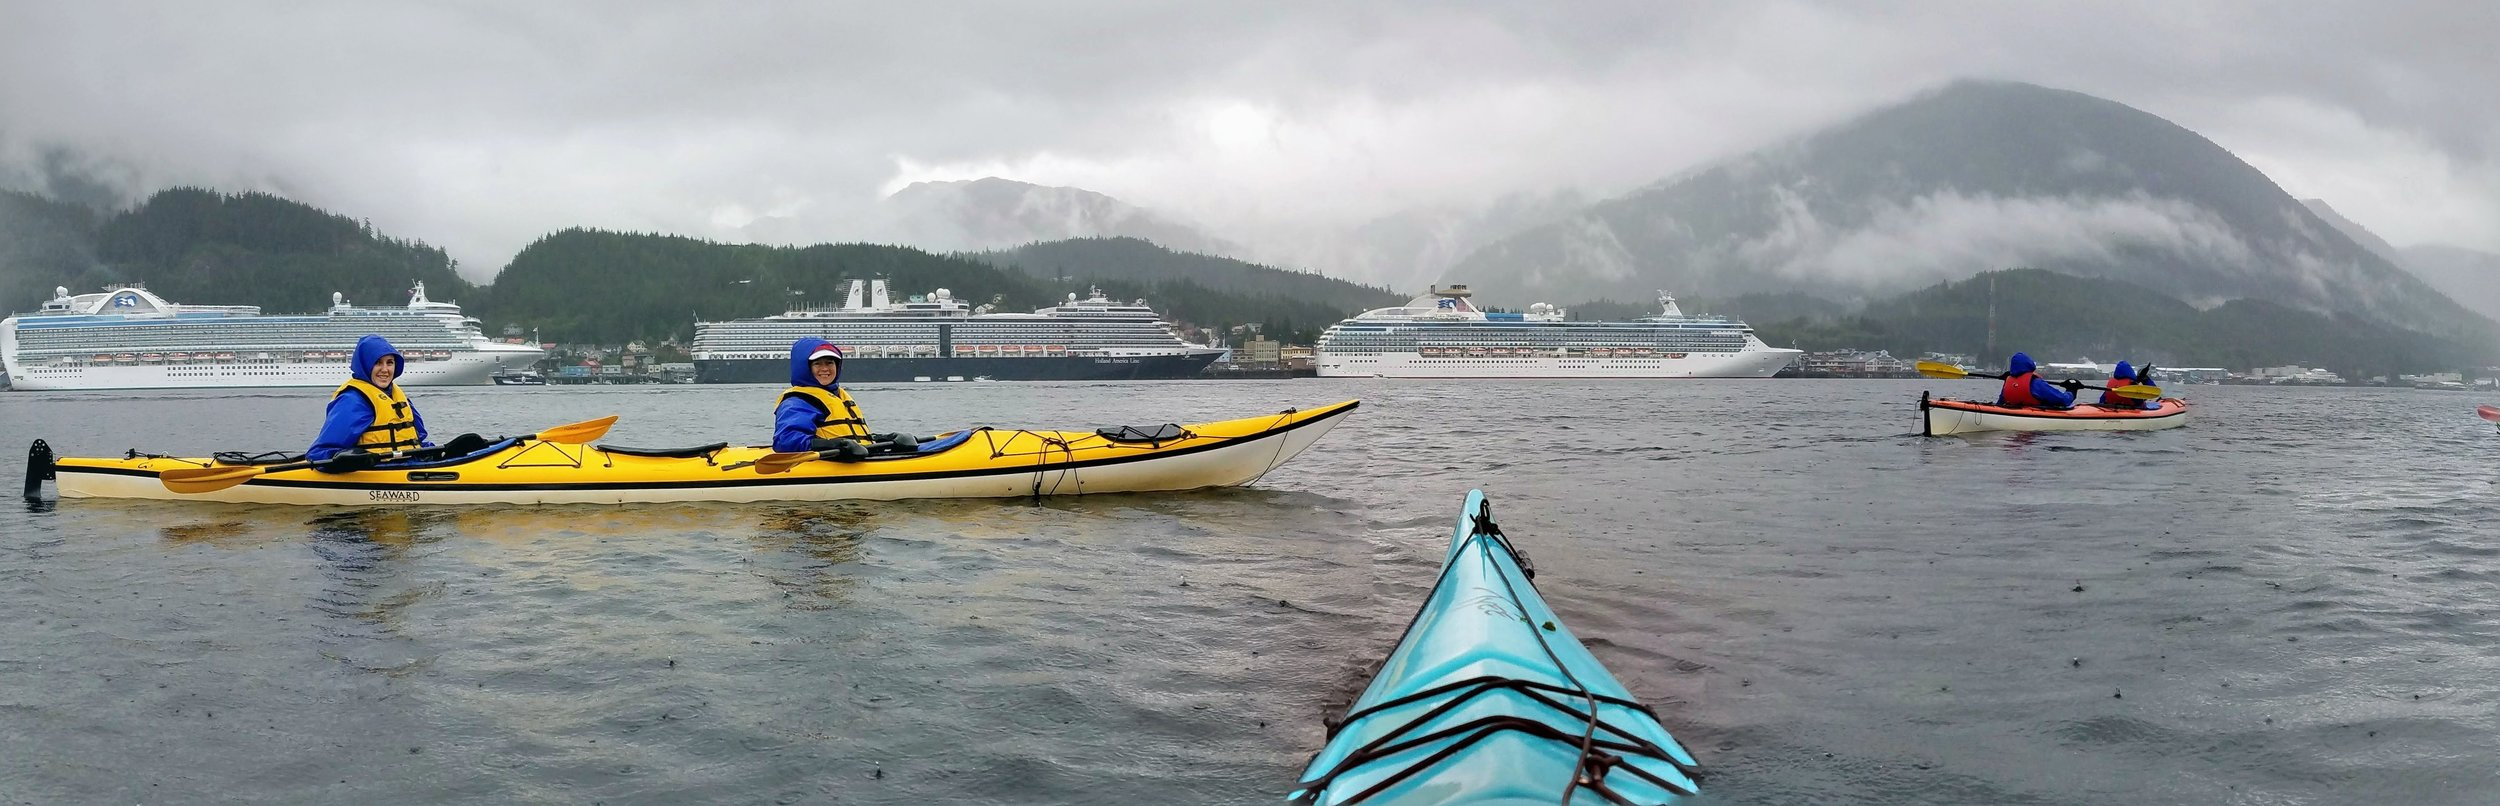 Rain is part of the fun in Ketchikan. We outfit everyone with waterproof gear and get out and enjoy the weather.